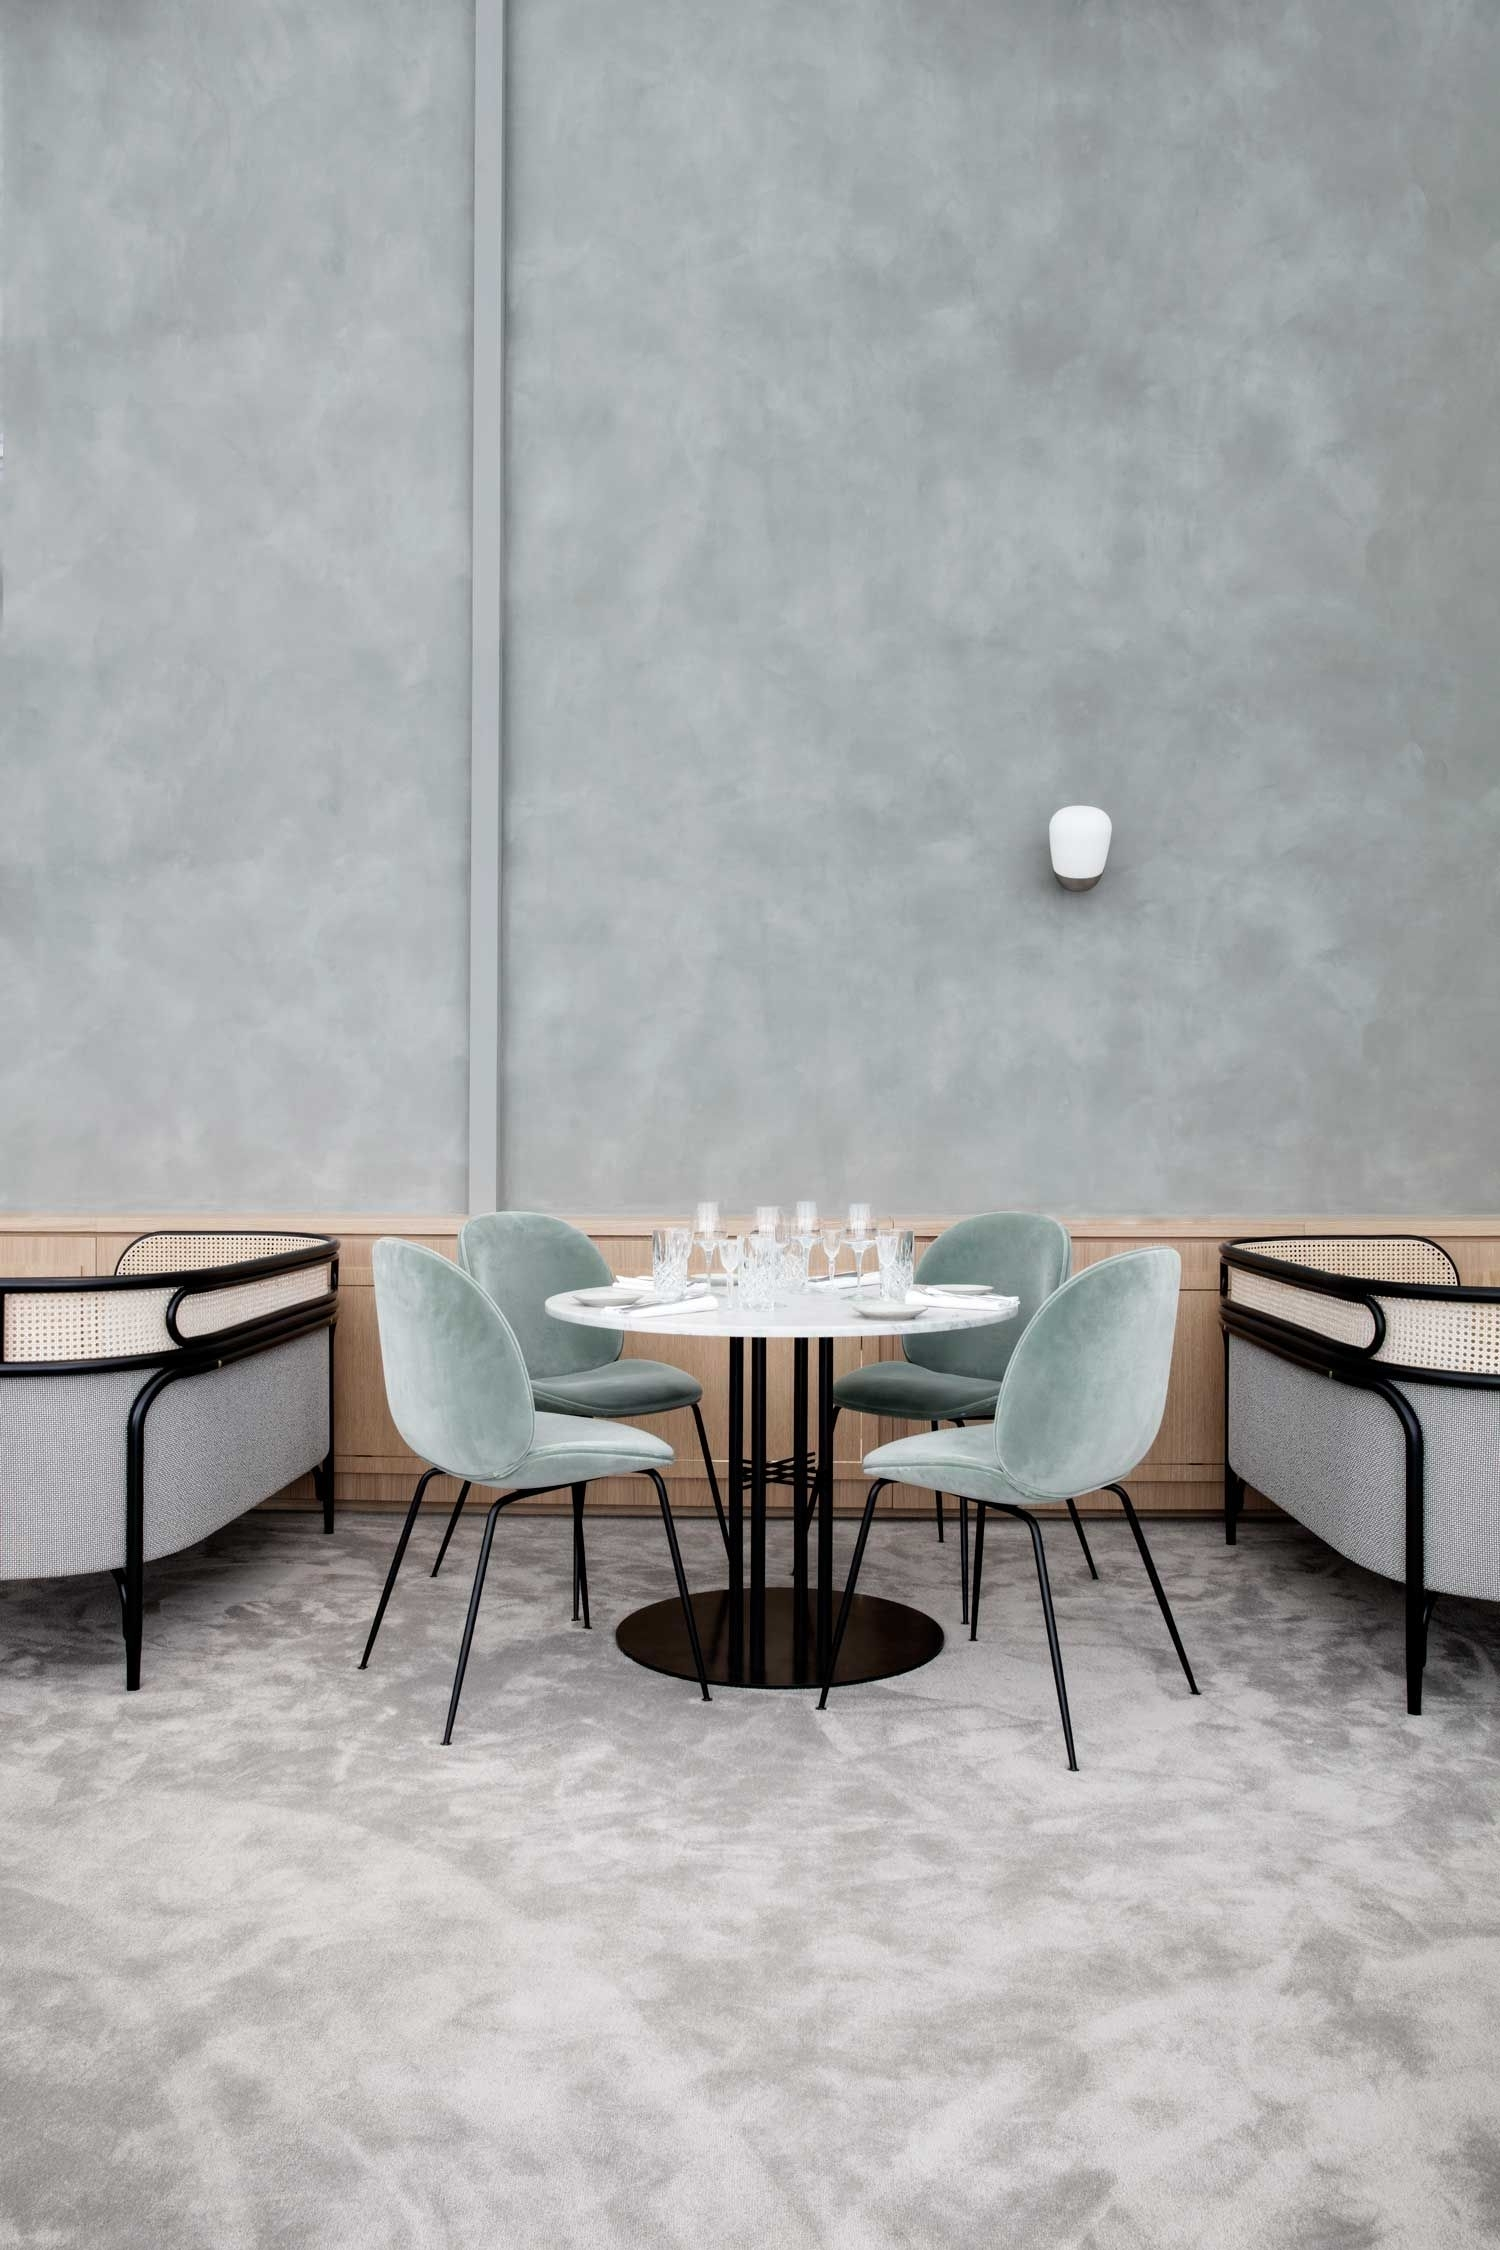 Inspiration about Well Liked Osteria Emerald Side Chairs Intended For Maison Du Danemark (House Of Denmark) In Parisgamfratesi. (#11 of 20)